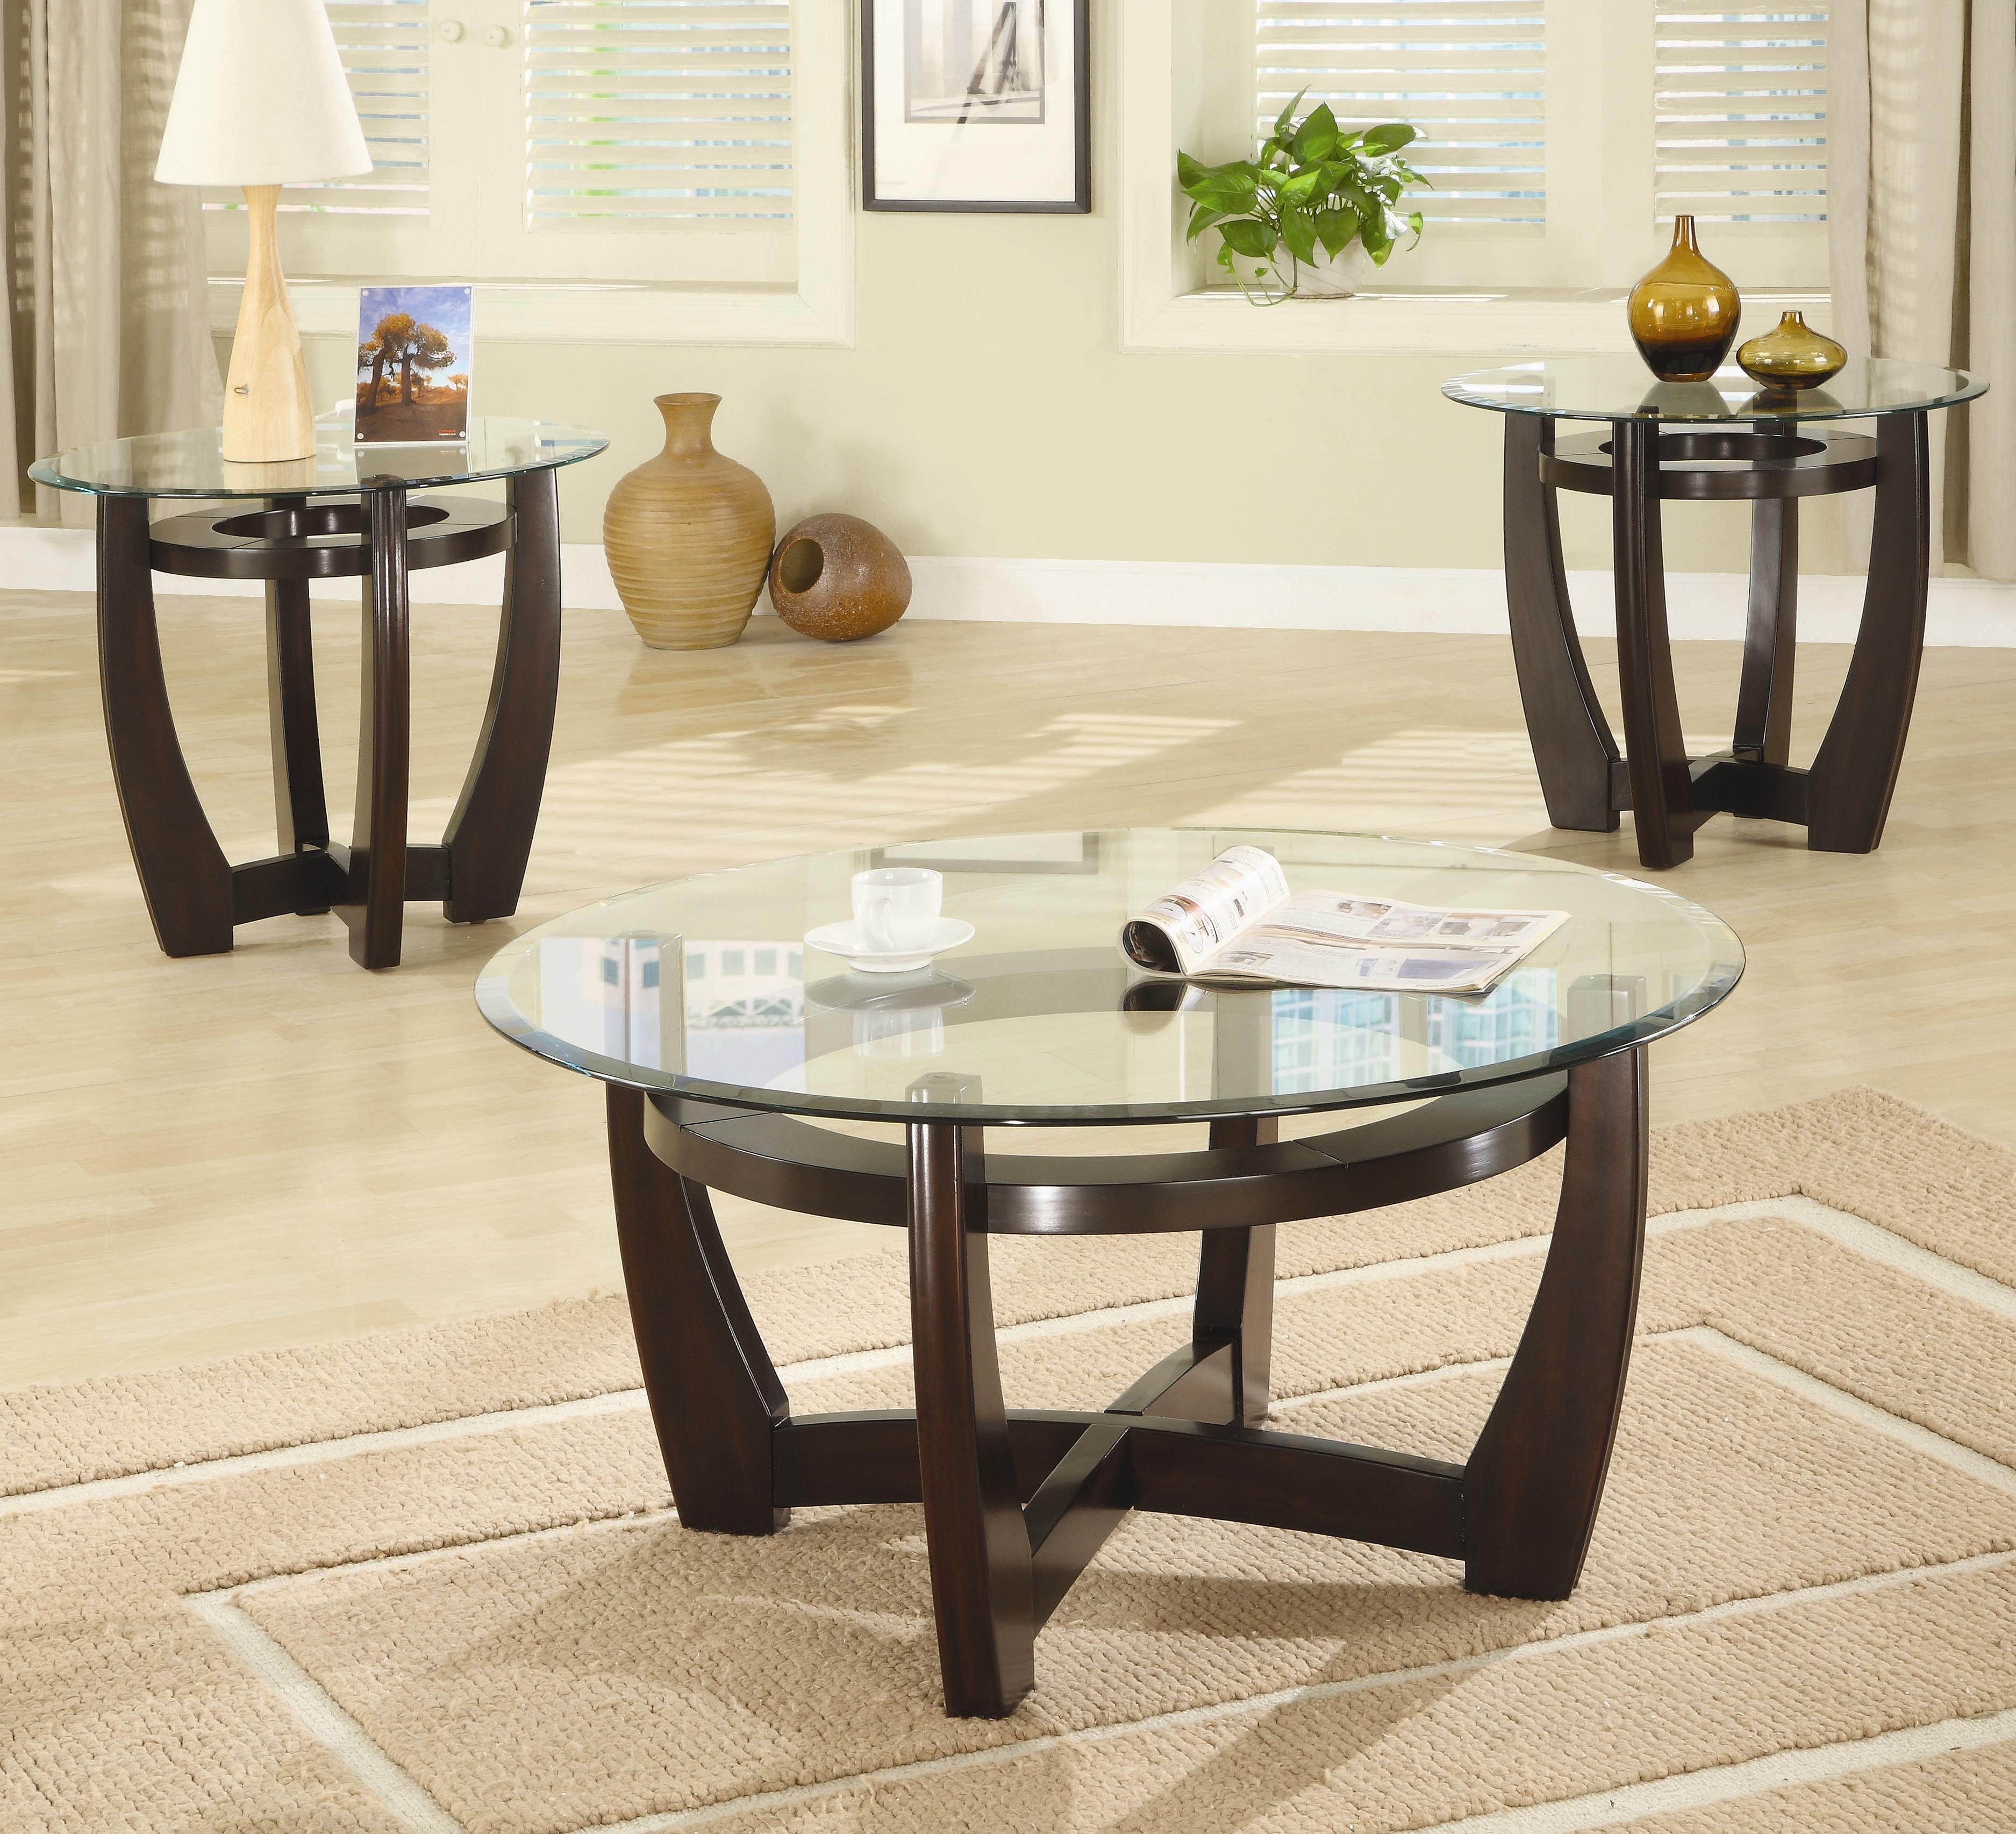 Sofa Table Sets Throughout Sofa Table With Chairs (Image 11 of 15)